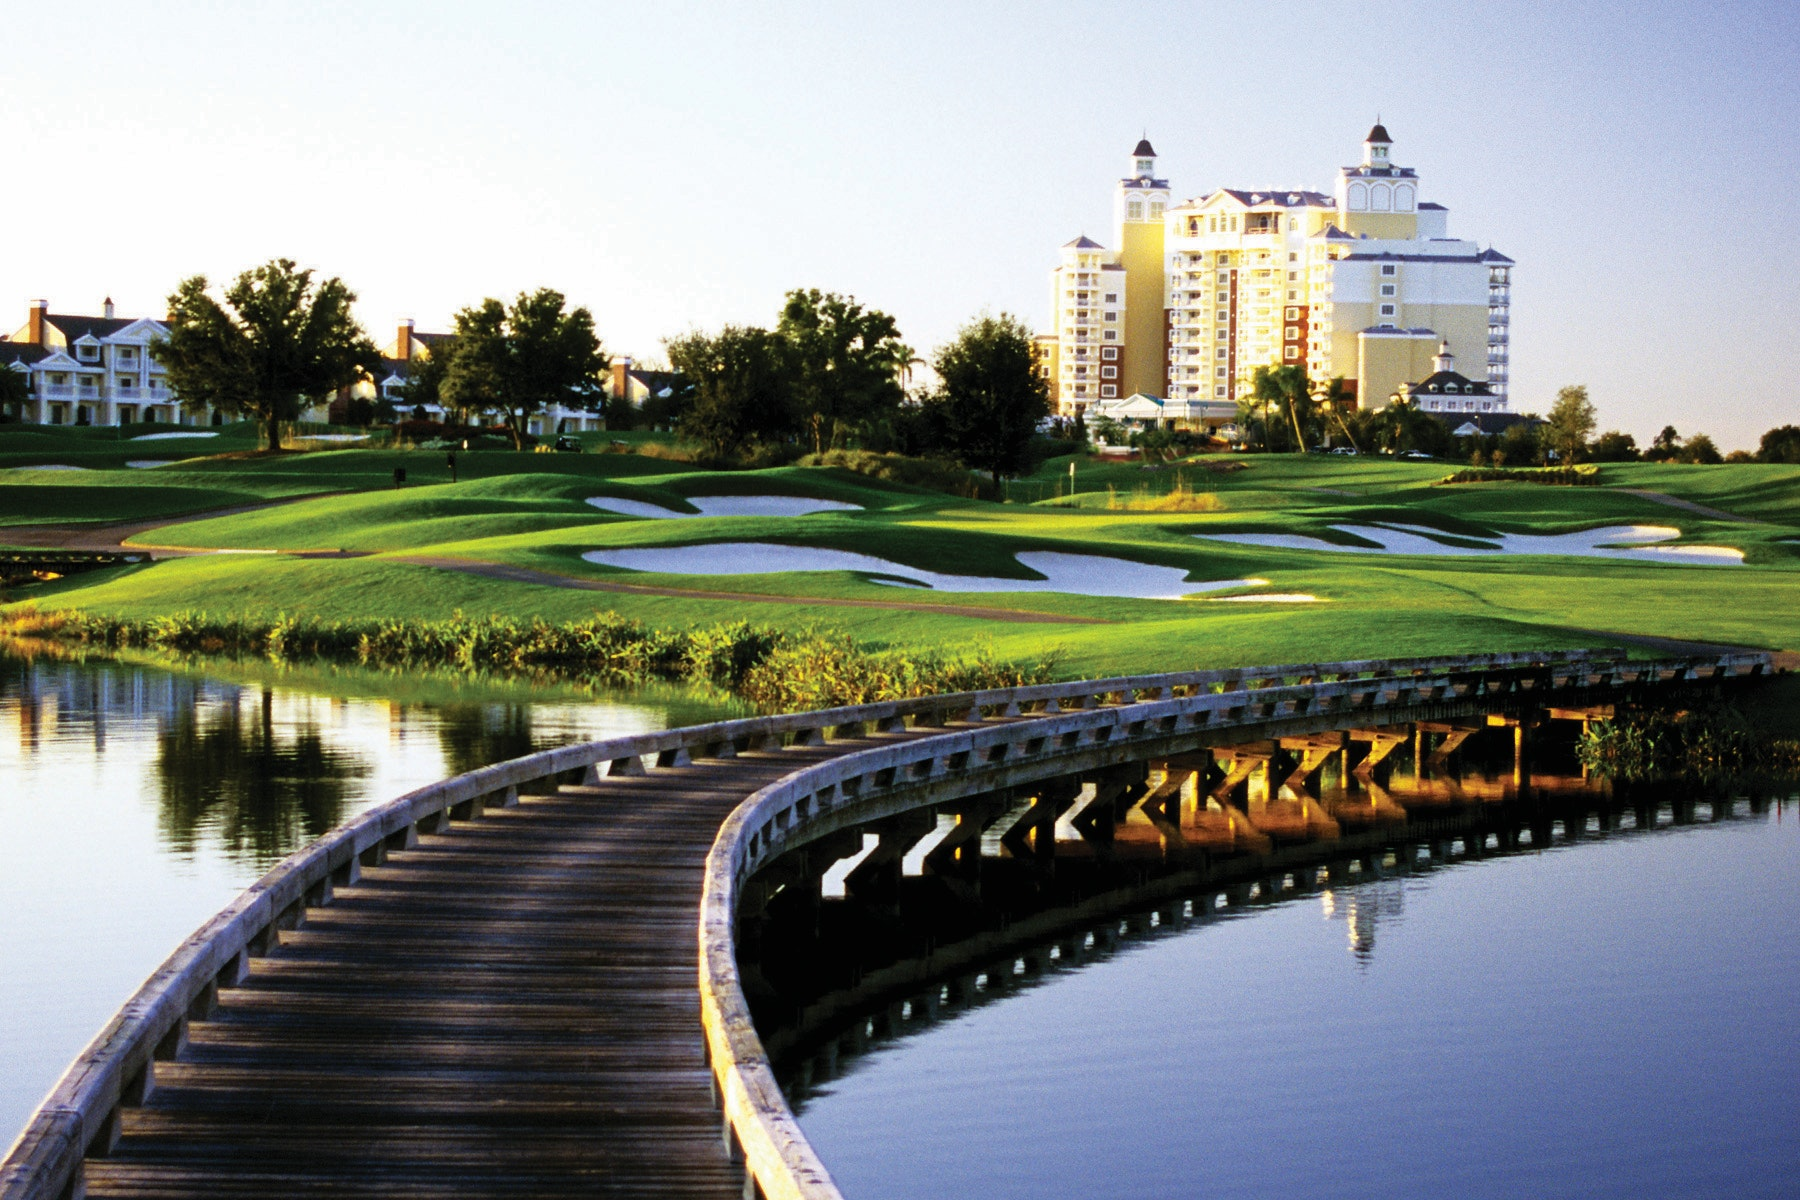 Eleven pools, three golf courses, tennis courts, a kids' club: it's hard to get bored at Reunion.